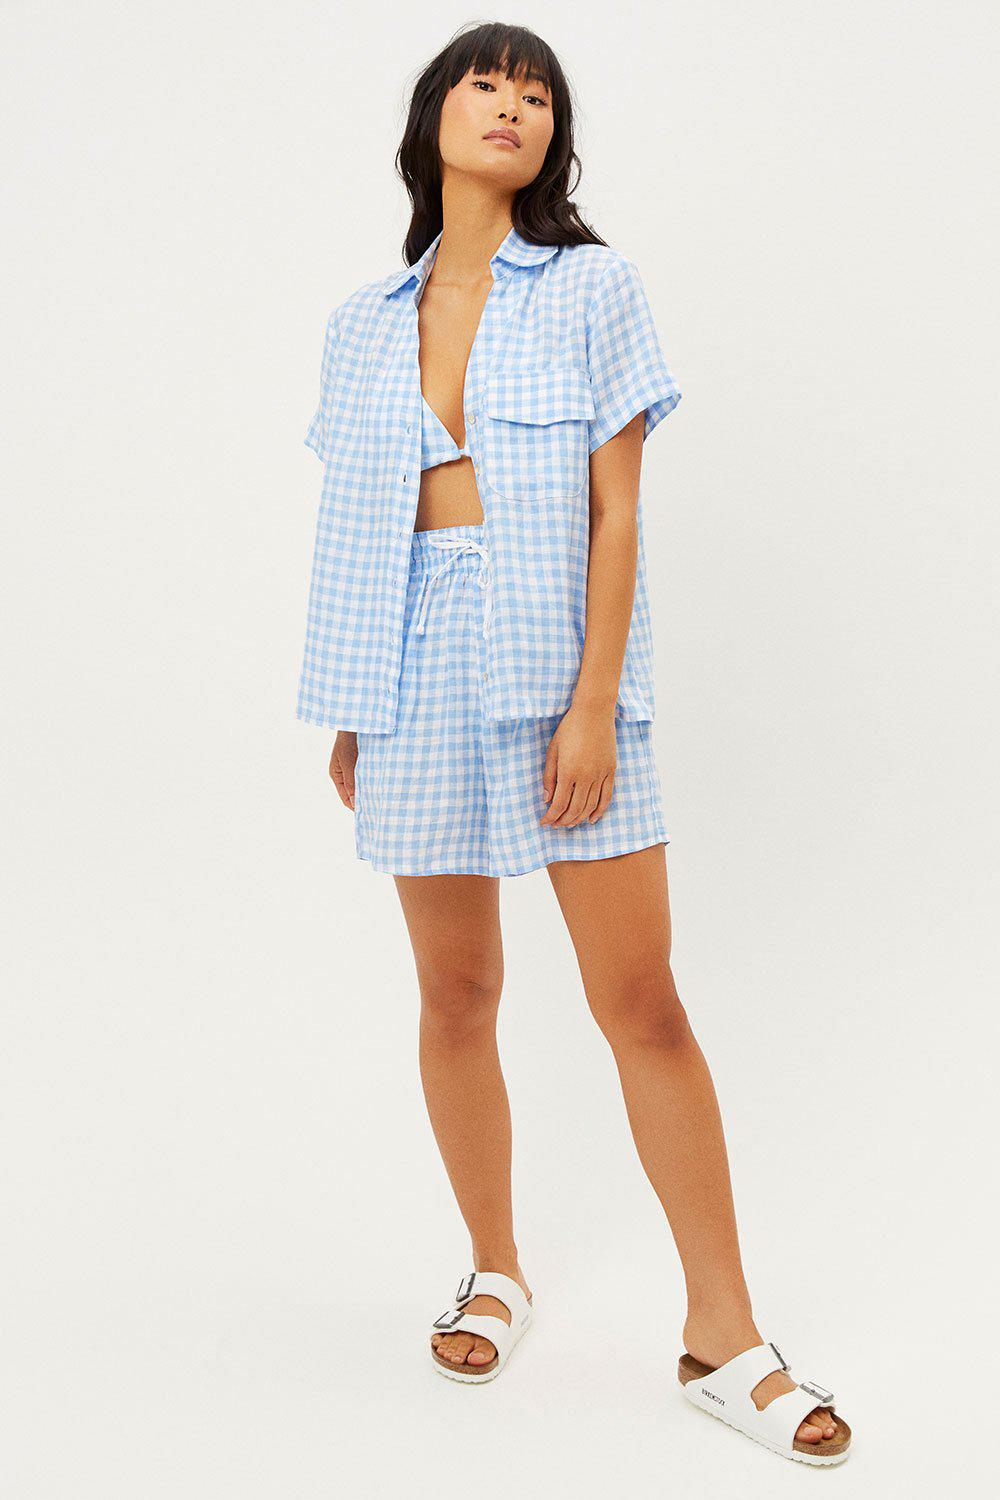 Lou Button Up Top - Bluebell